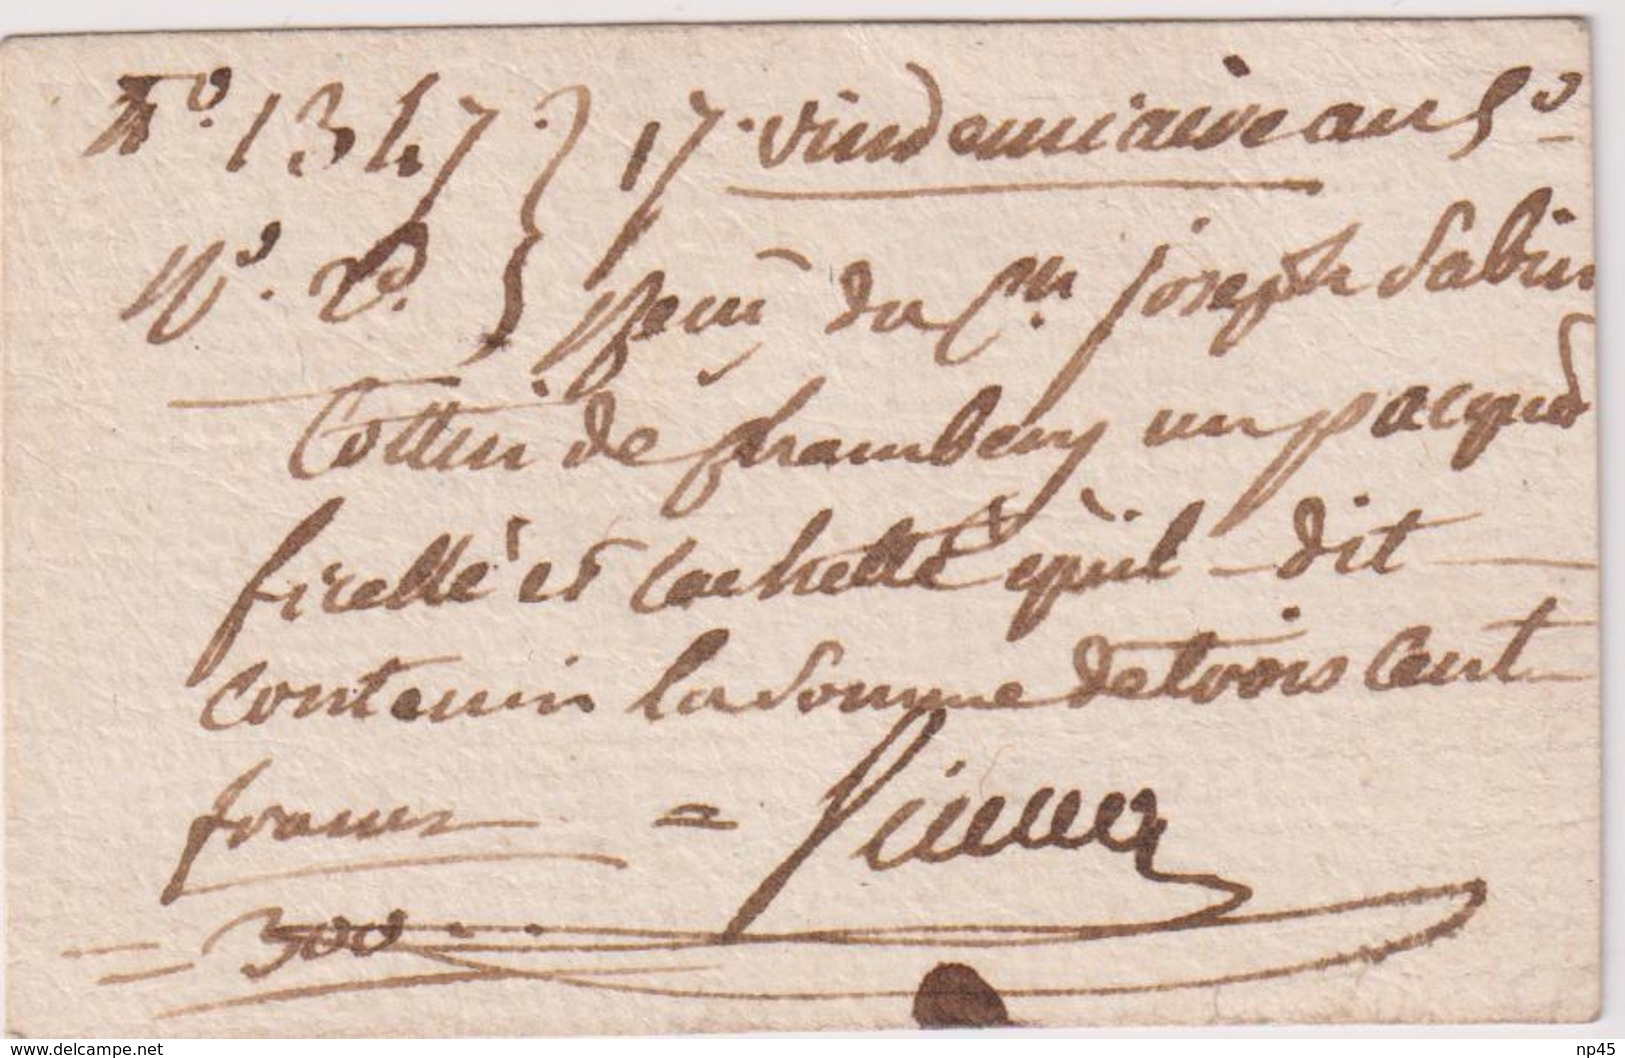 CARTES A JOUER XVIII Eme PERIODE REVOLUTIONNAIRE - Other Collections